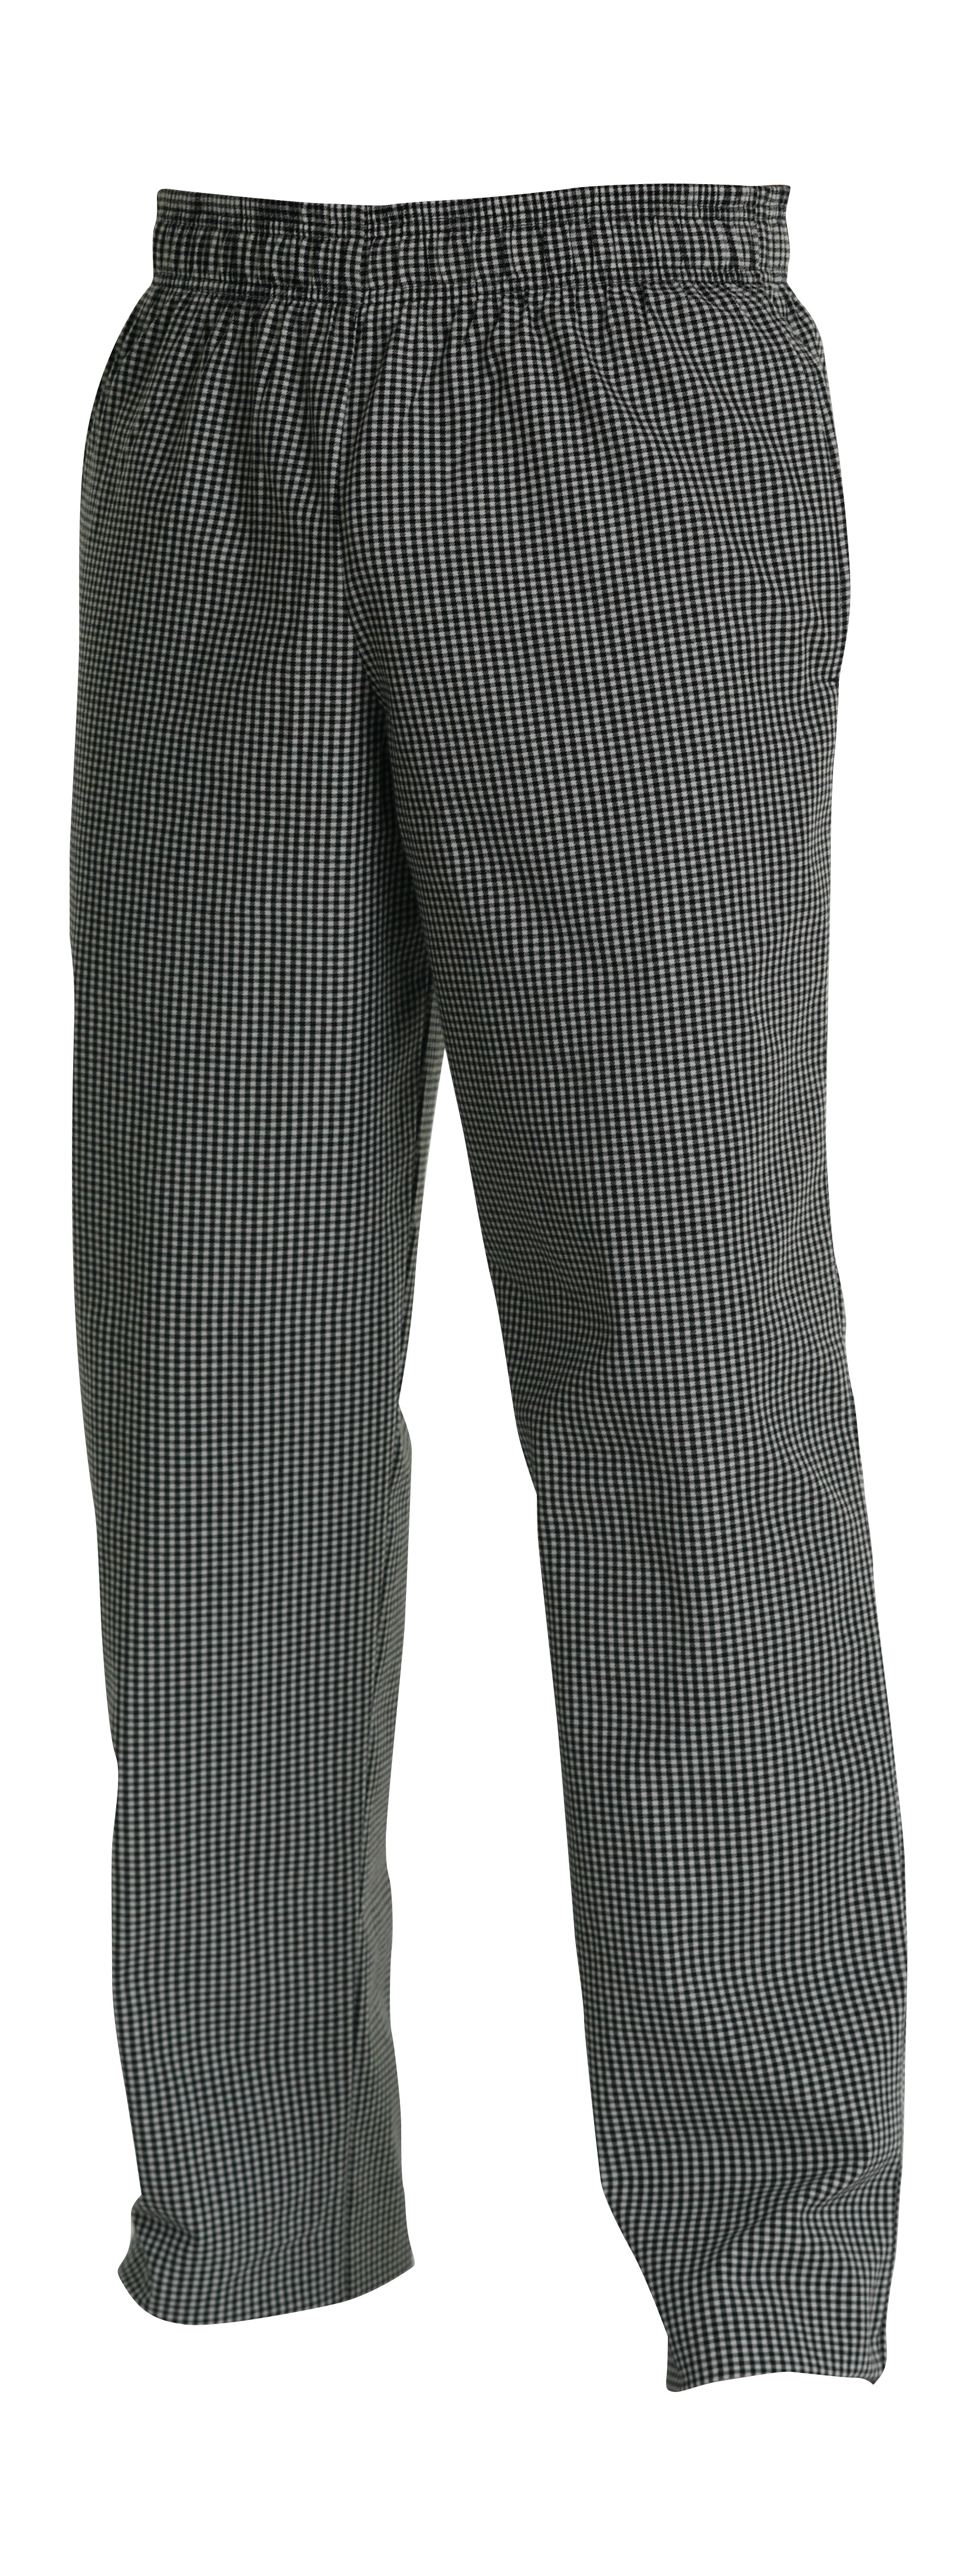 CHEFS UNIFORM - BAGGIES BLACK/WHITE CHECK -X SMALL